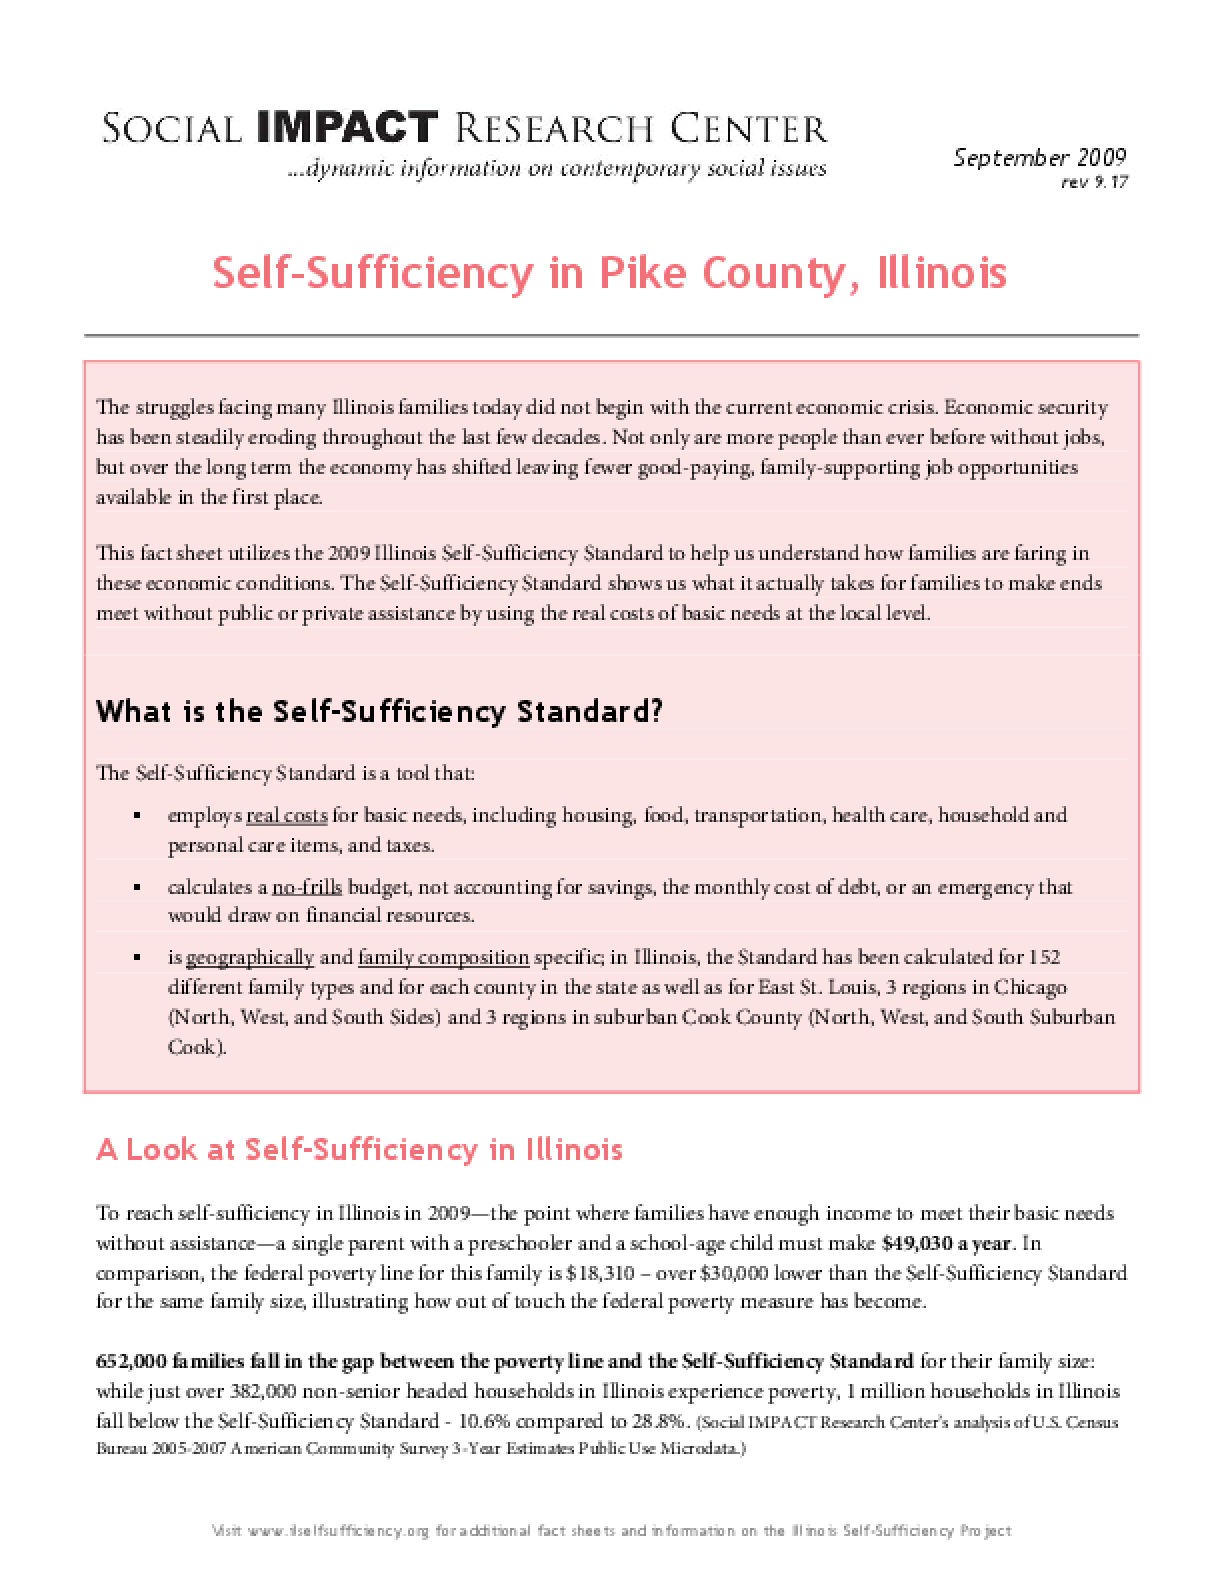 Self-Sufficiency in Pike County, Illinois